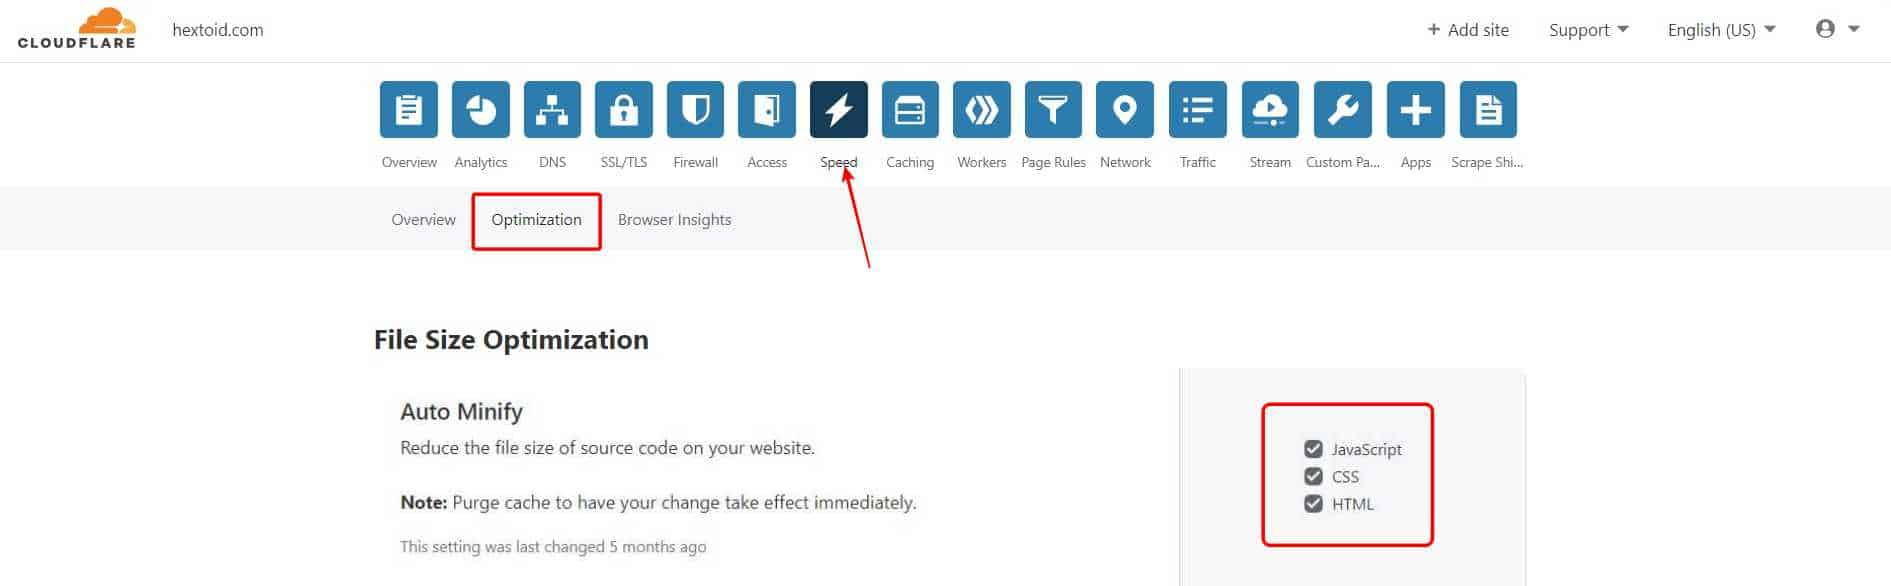 In Auto, Minify enable the JavaScript, CSS, HTML